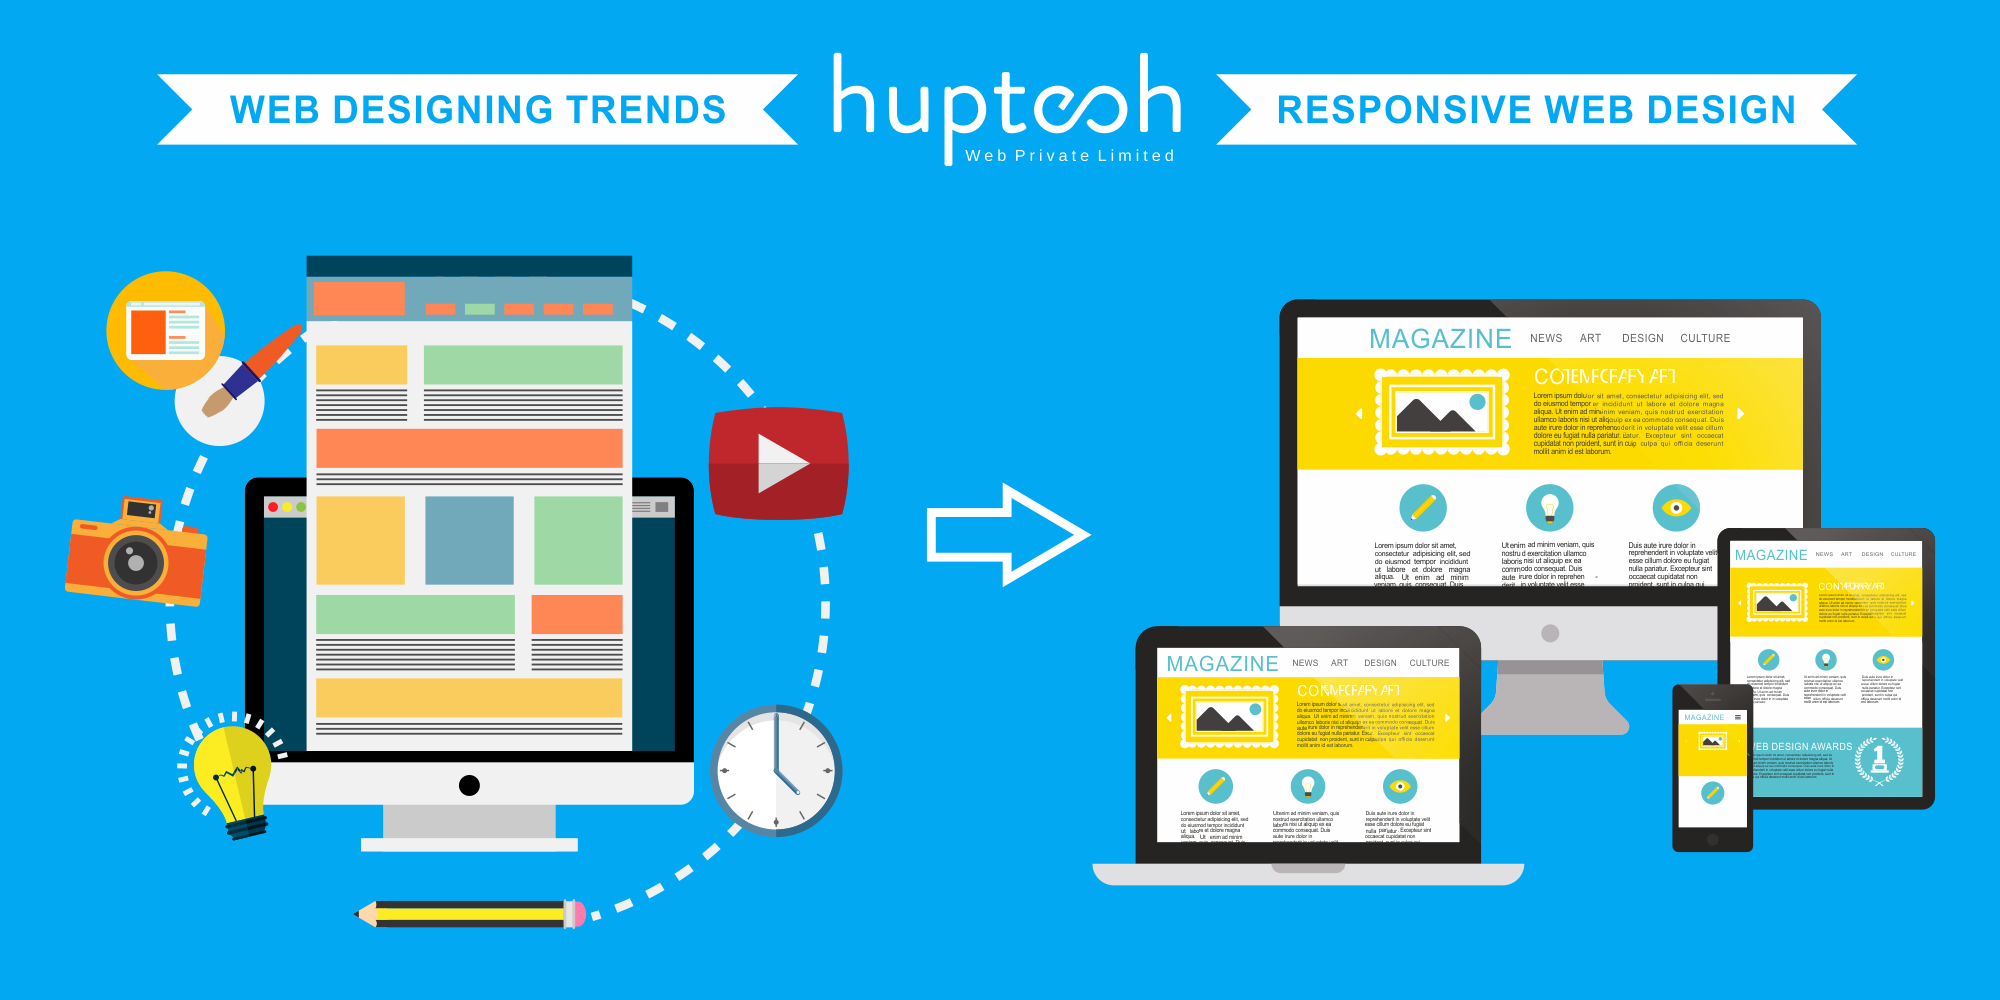 5 Web Designing Trends That Huptech Is Eager To Take Along In 2018